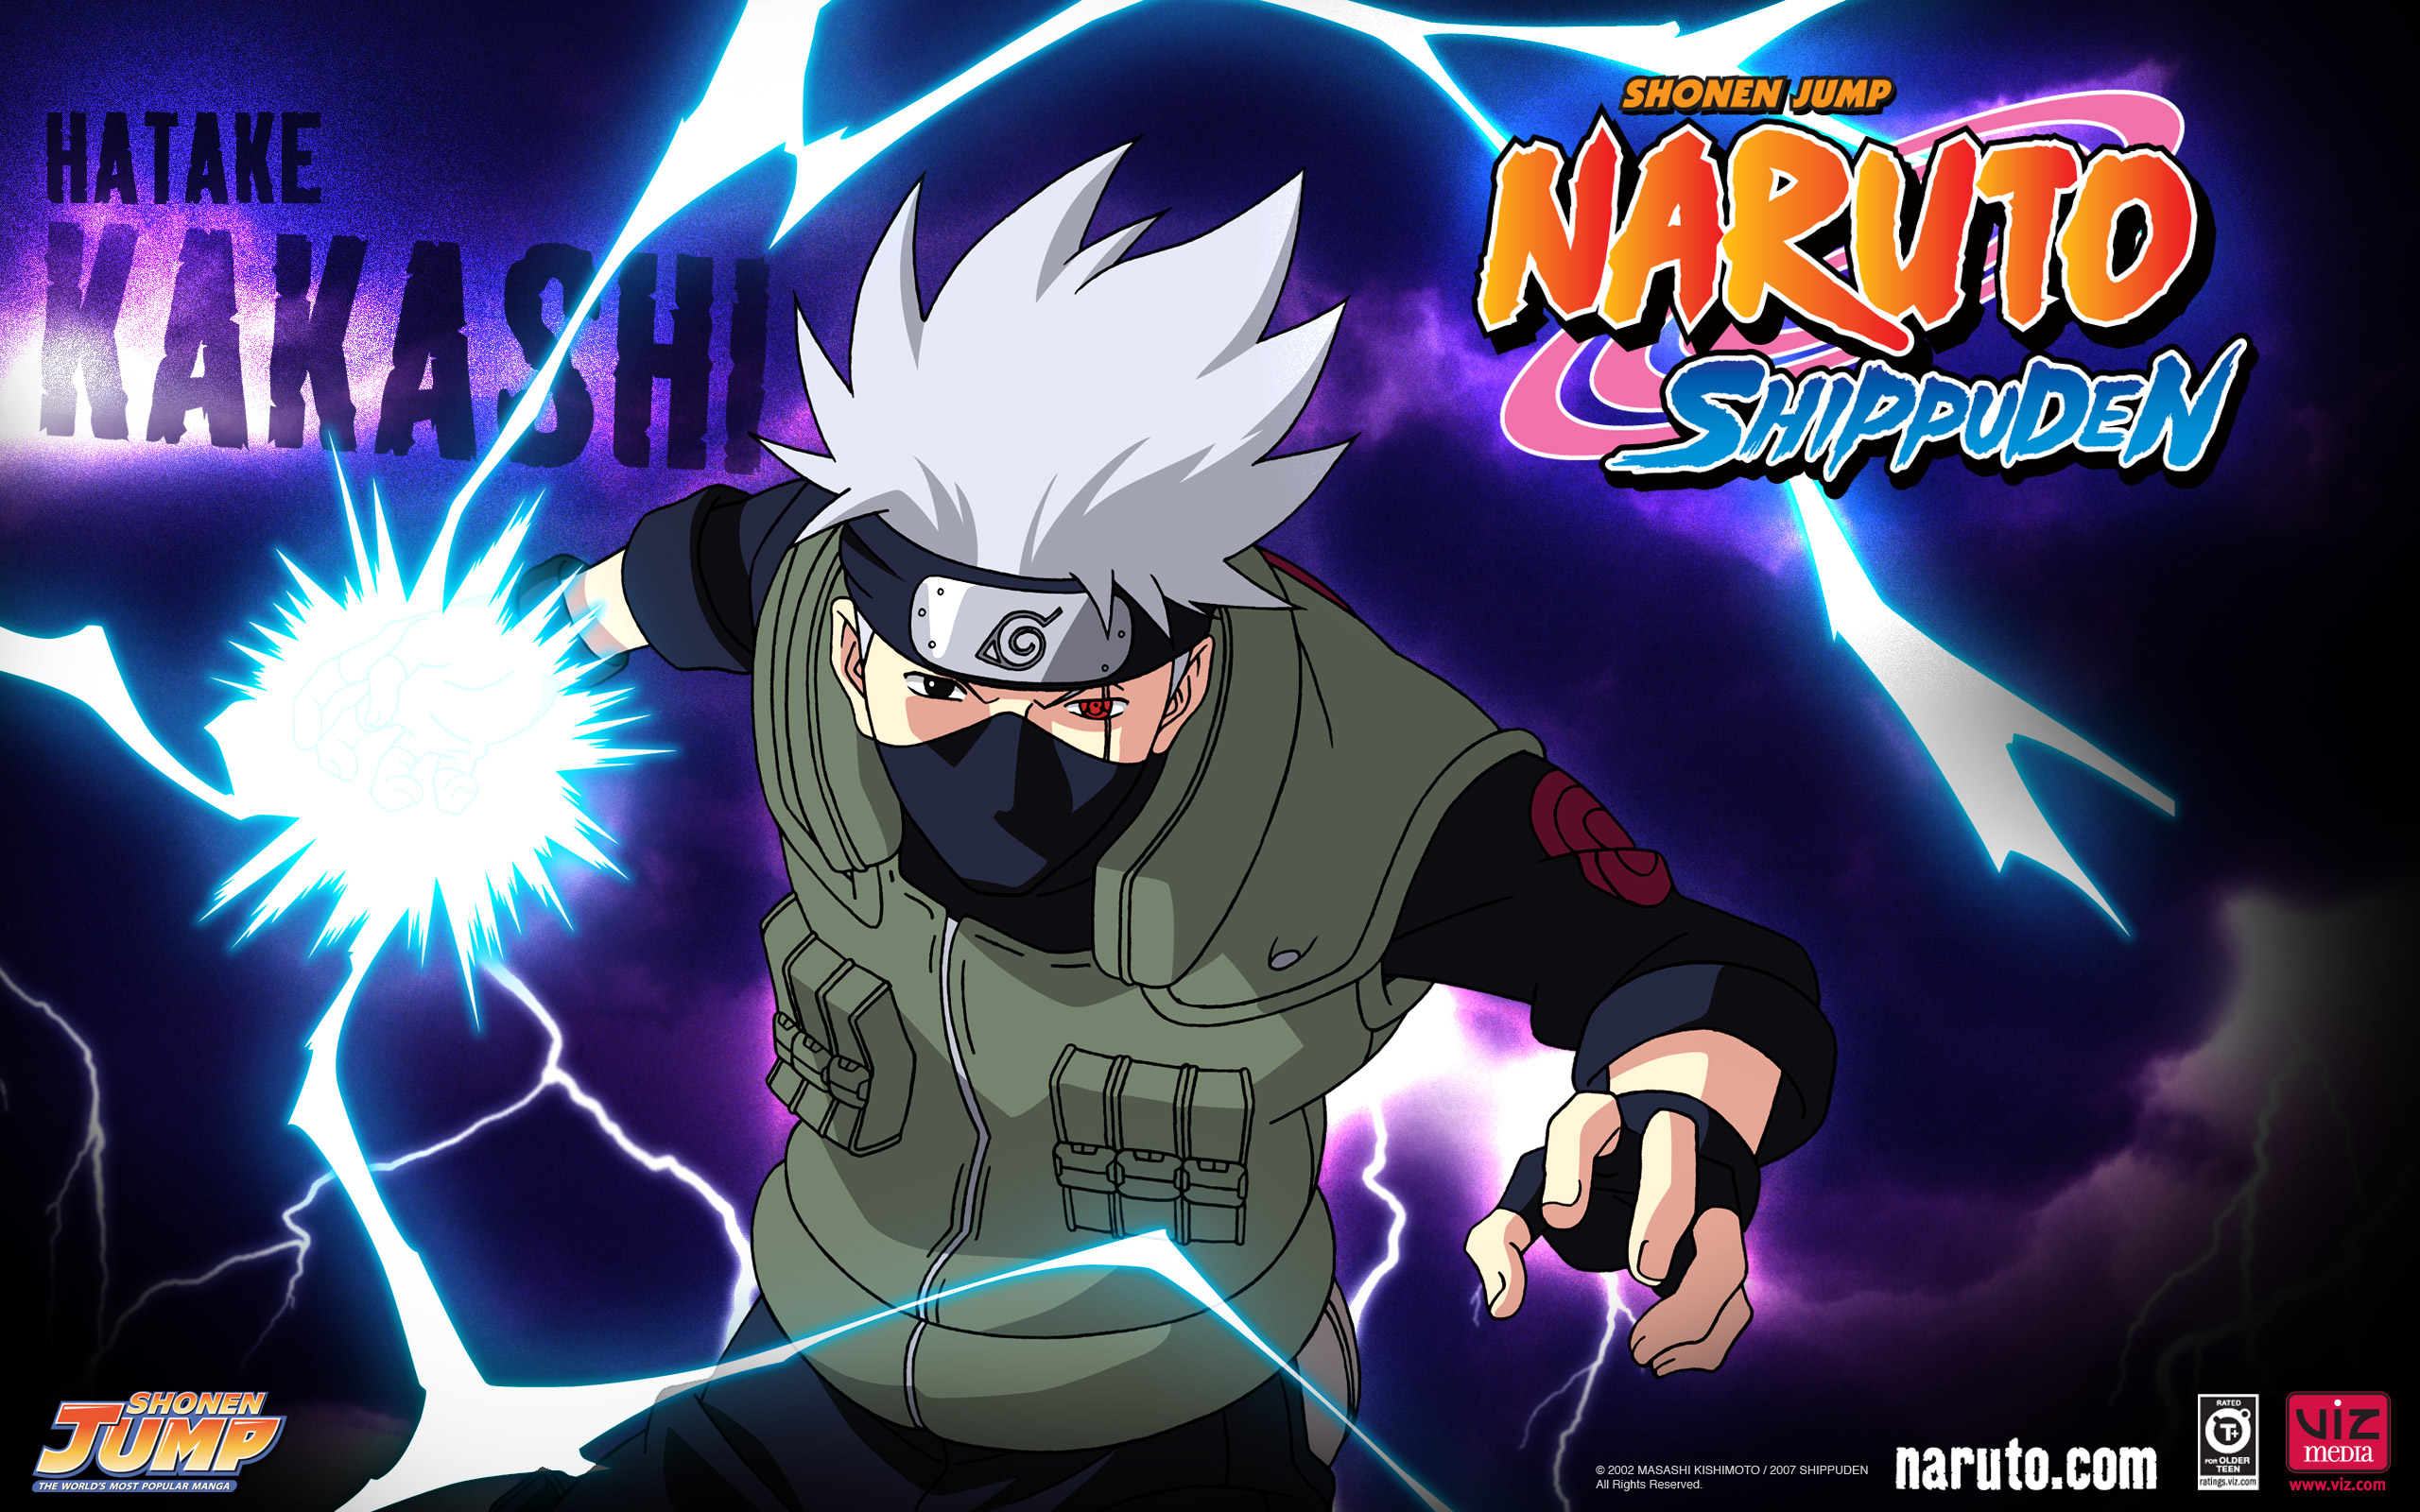 Naruto Res: 2560x1600 / Size:996kb. Views: 769488